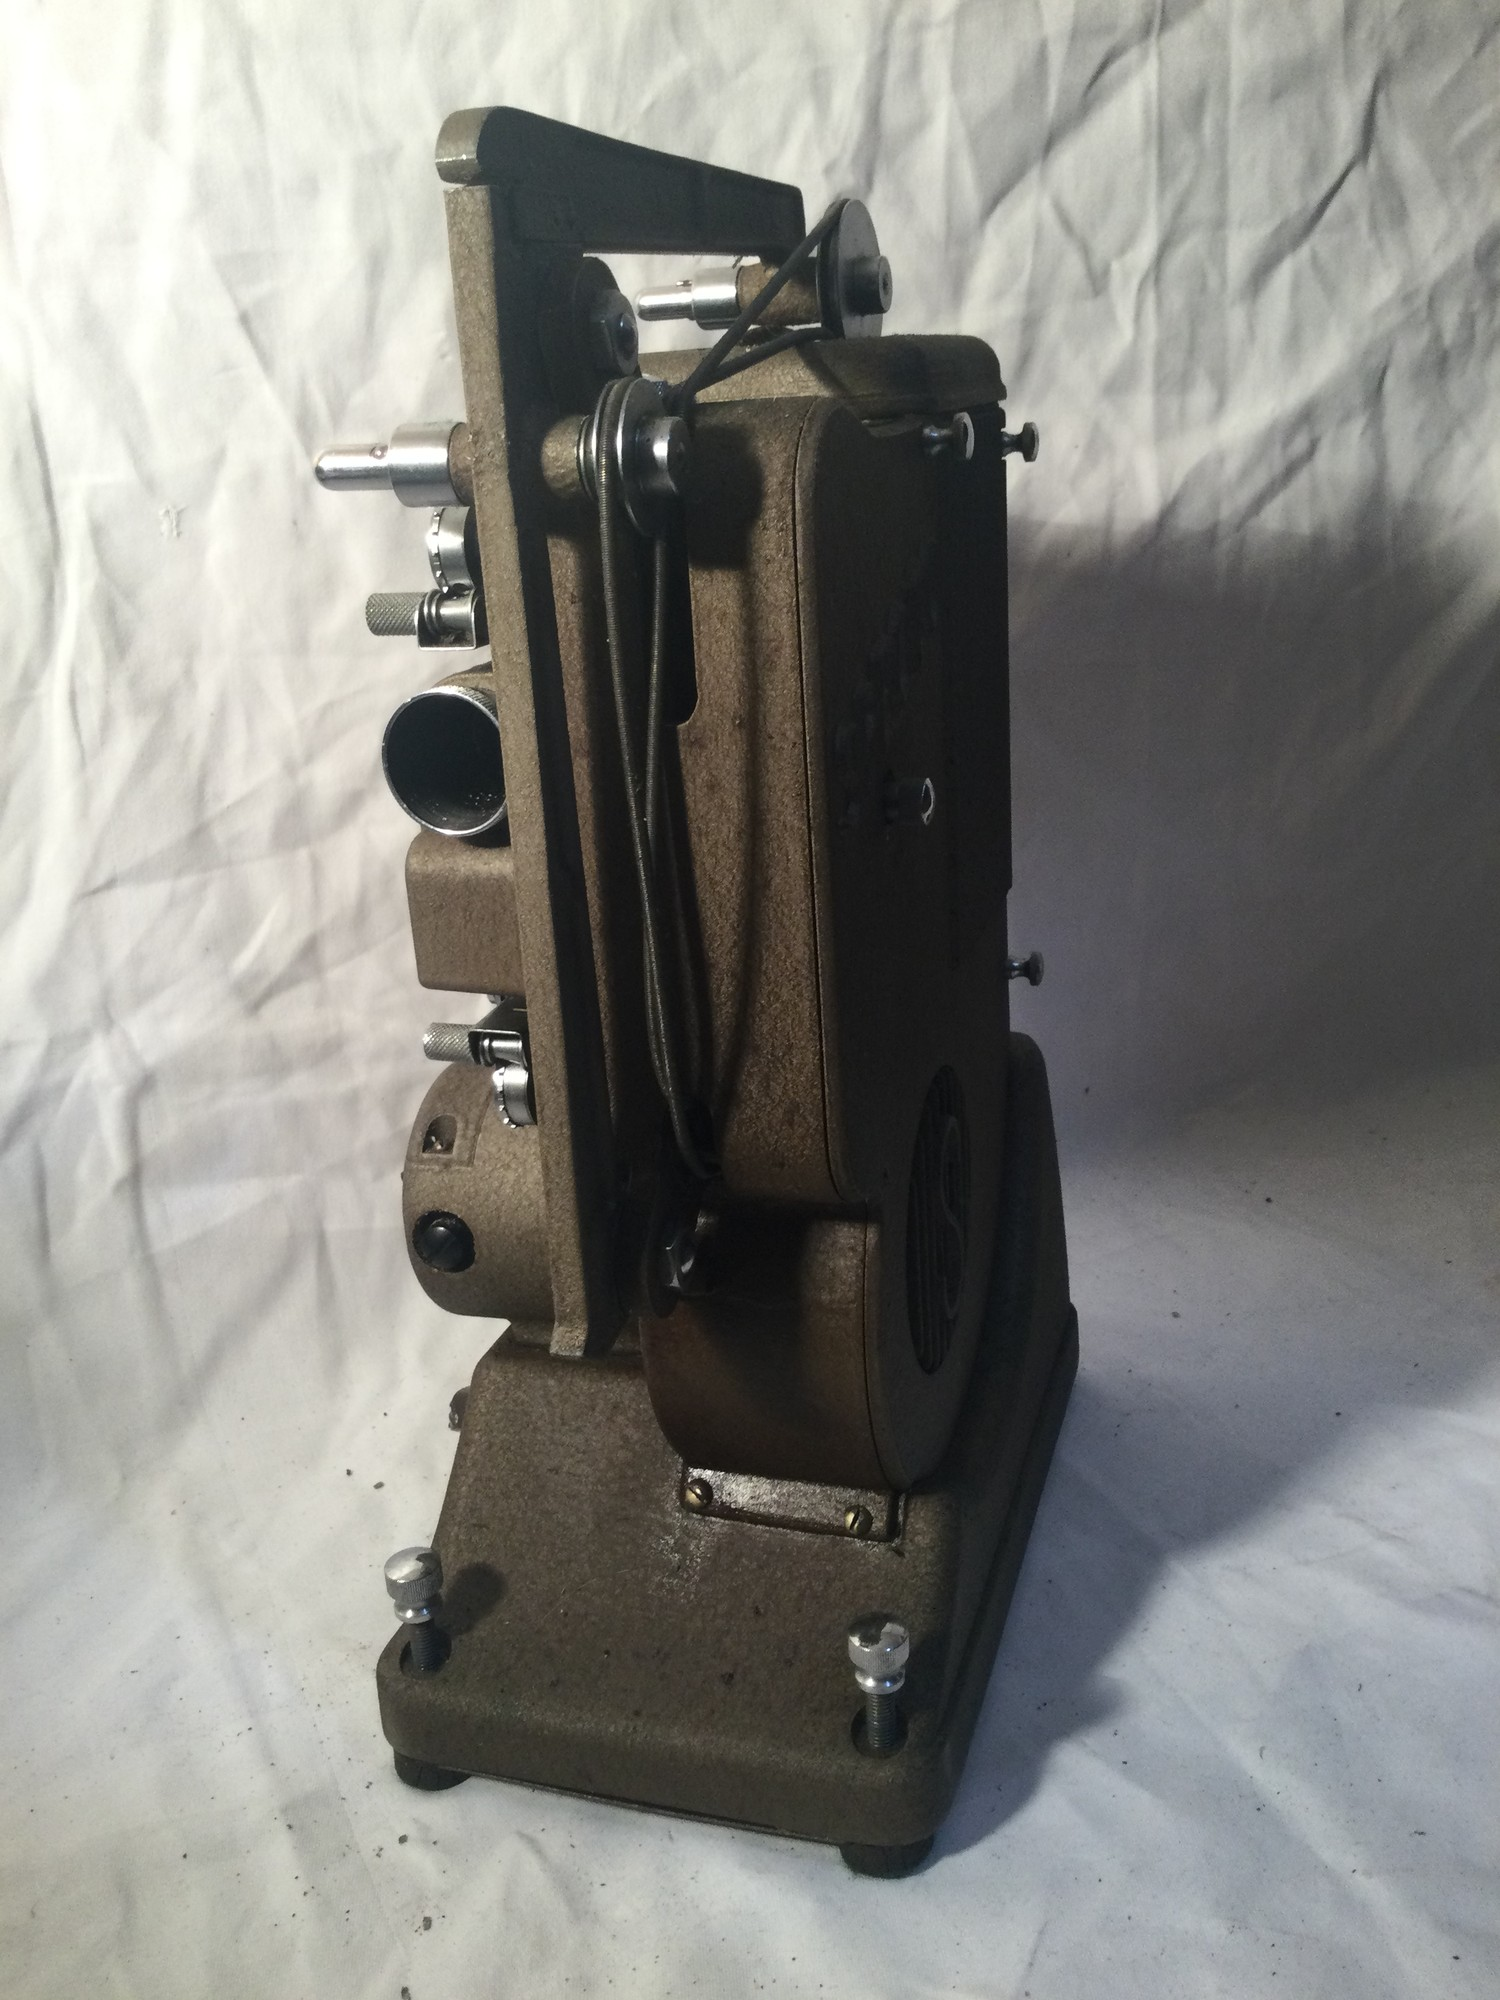 SPECTO FILM PROJECTOR. A vintage,probably 1930s Specto 500 moving film projector. Comes with brown